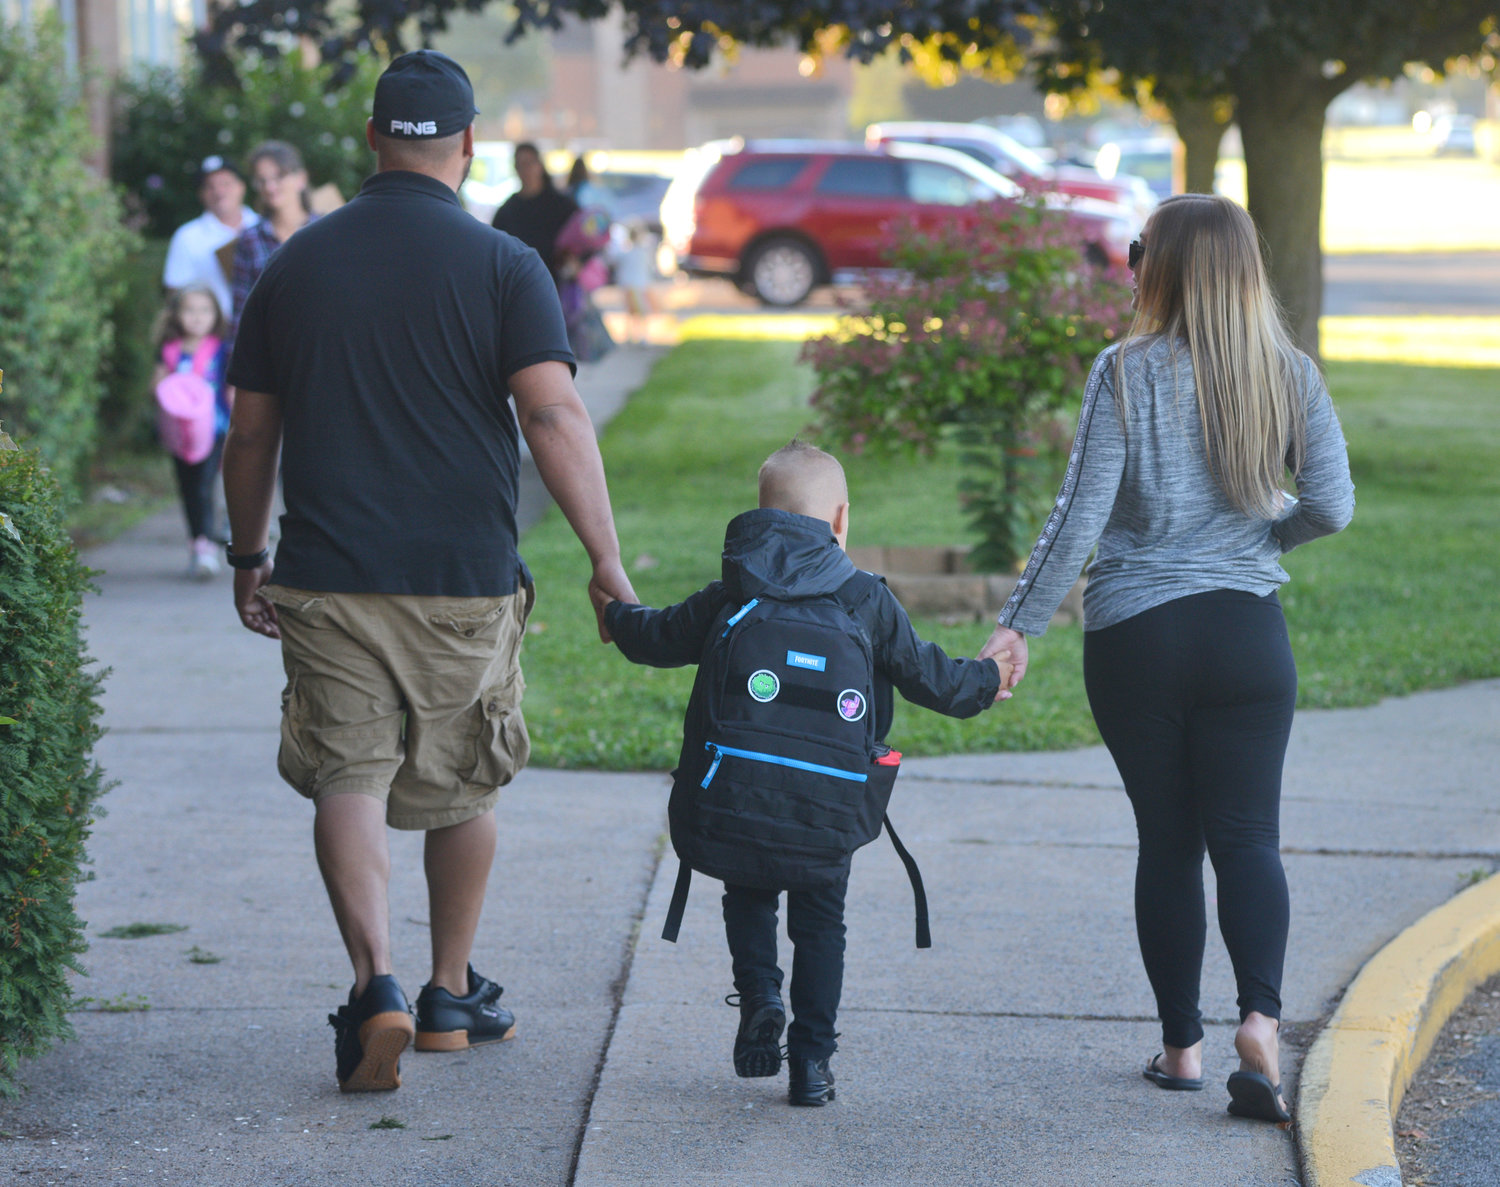 Max Eisinger and his wife Eisinger walk hand and hand with their son Mason, 4, who is going to his first day of pre-school at Rome Catholic.